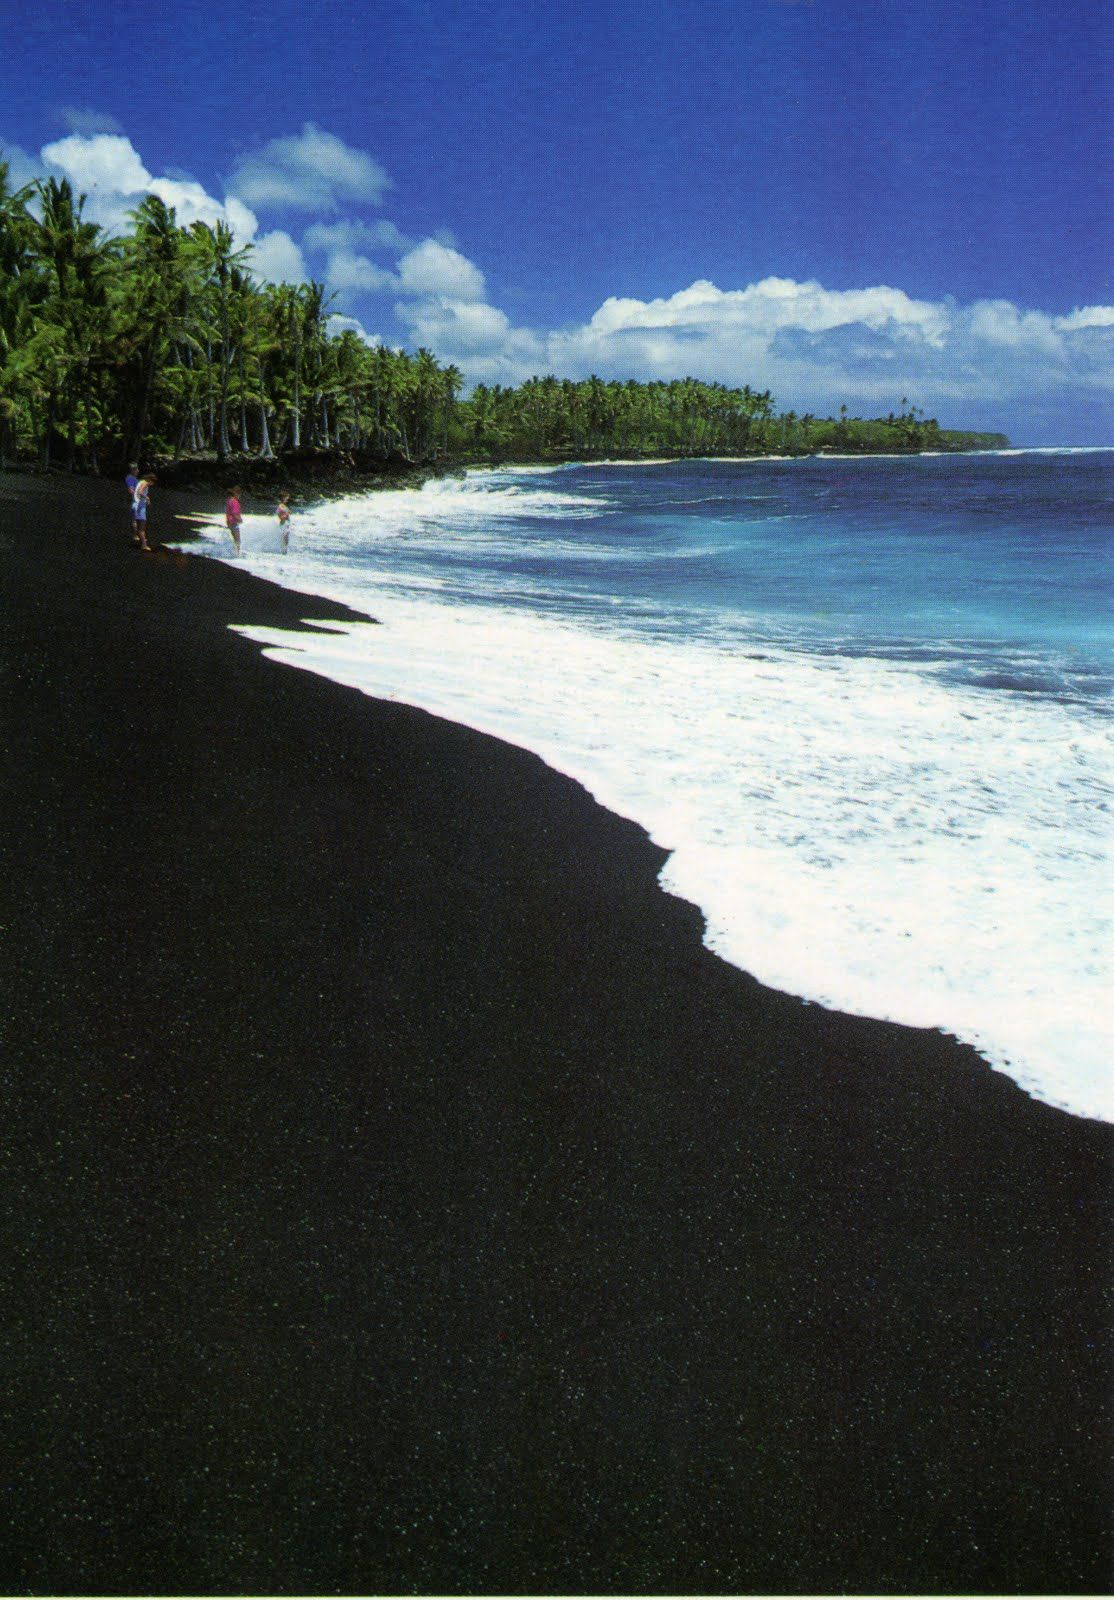 The Black Sand Beach Was Gorgeous Thanks To Vacation4less On Facebook We Stayed At Sea Mountain First Part Of Our Hawaii Vacation Feb 2017 Blacksand